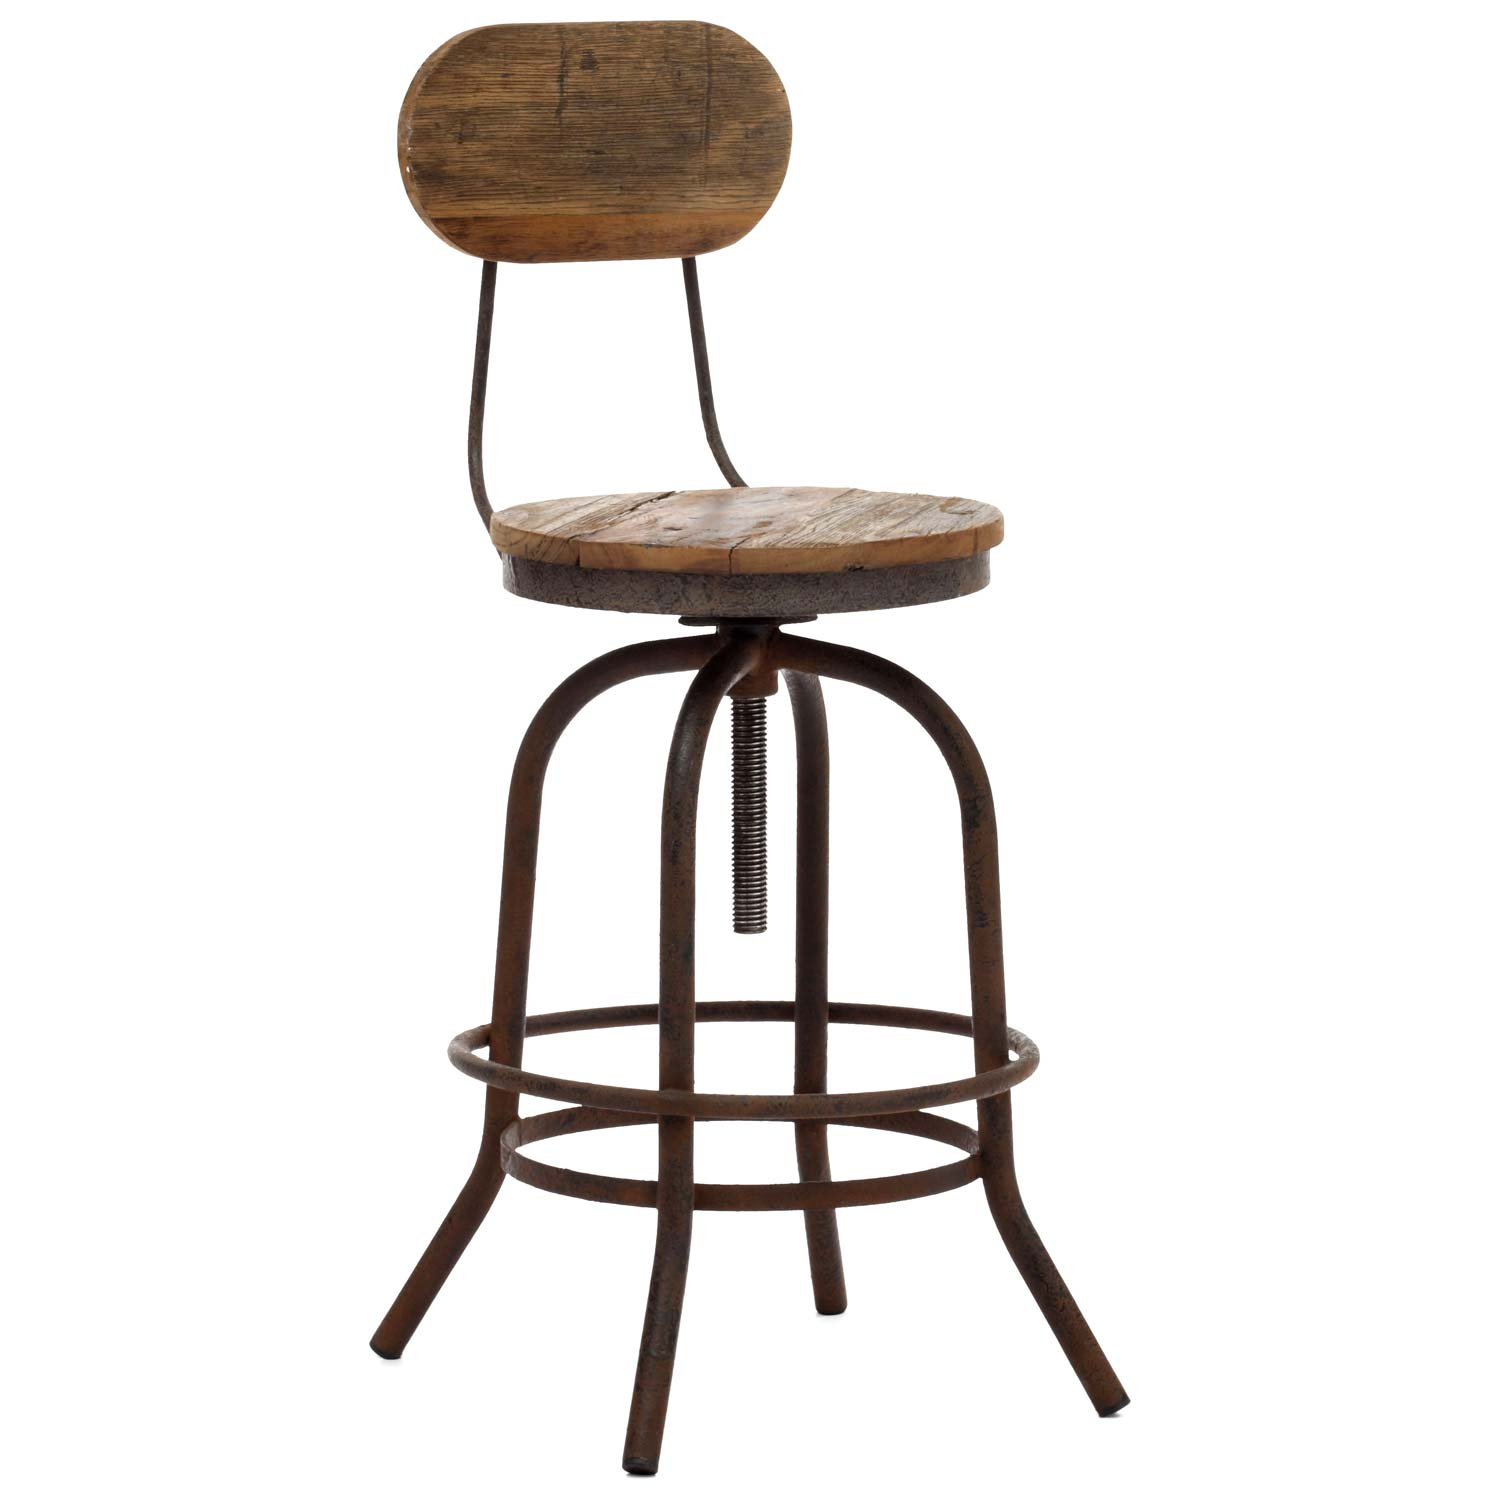 bar stool chairs folding chair makeover twin peaks 24 quot counter antique metal distressed